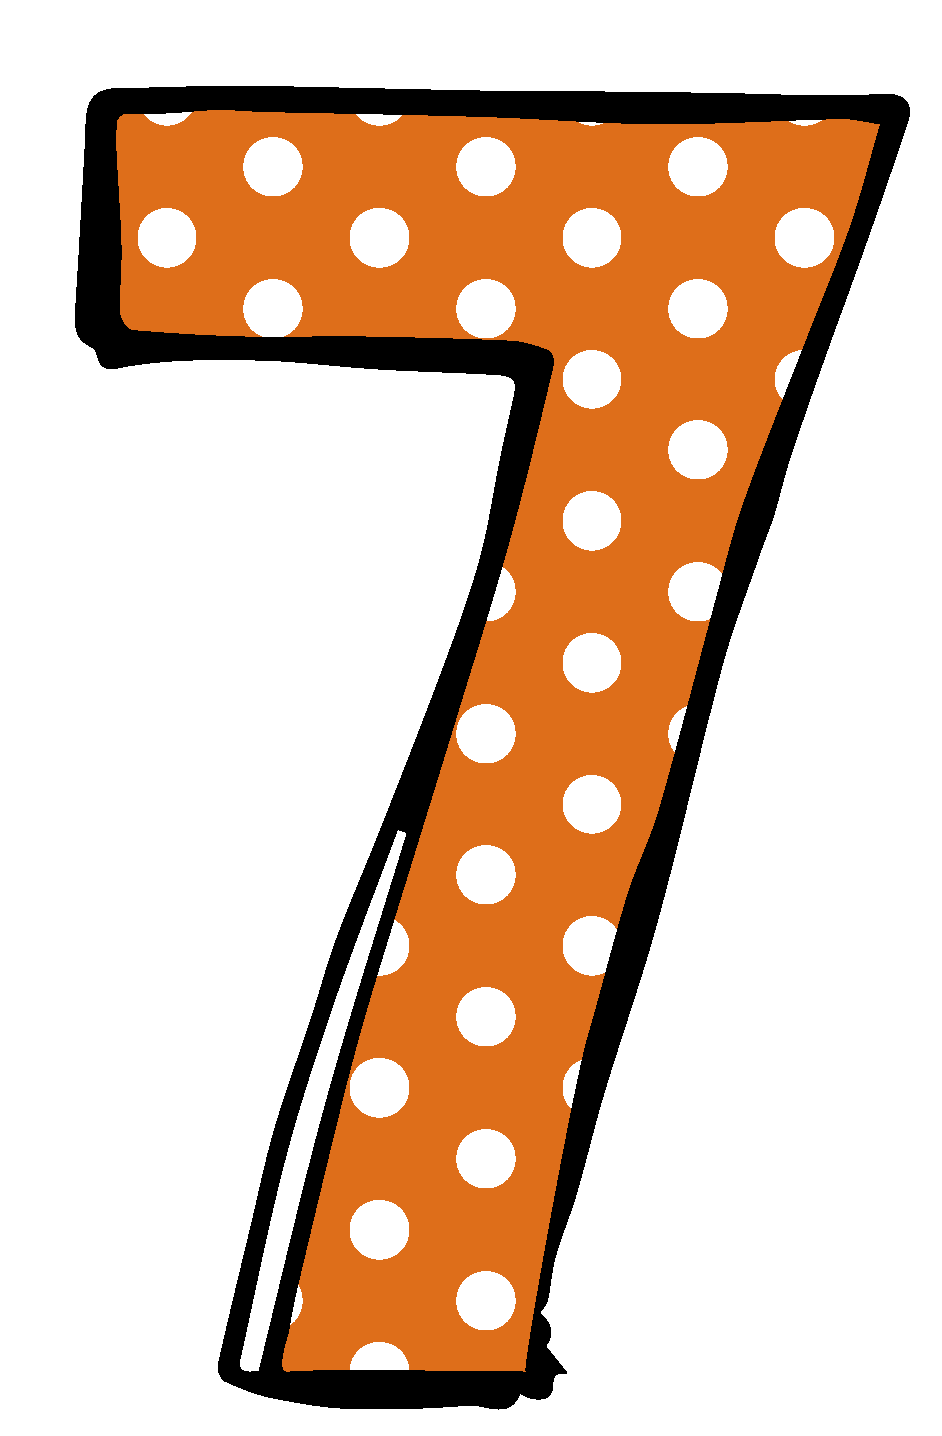 7 clipart 7th. Number free download best